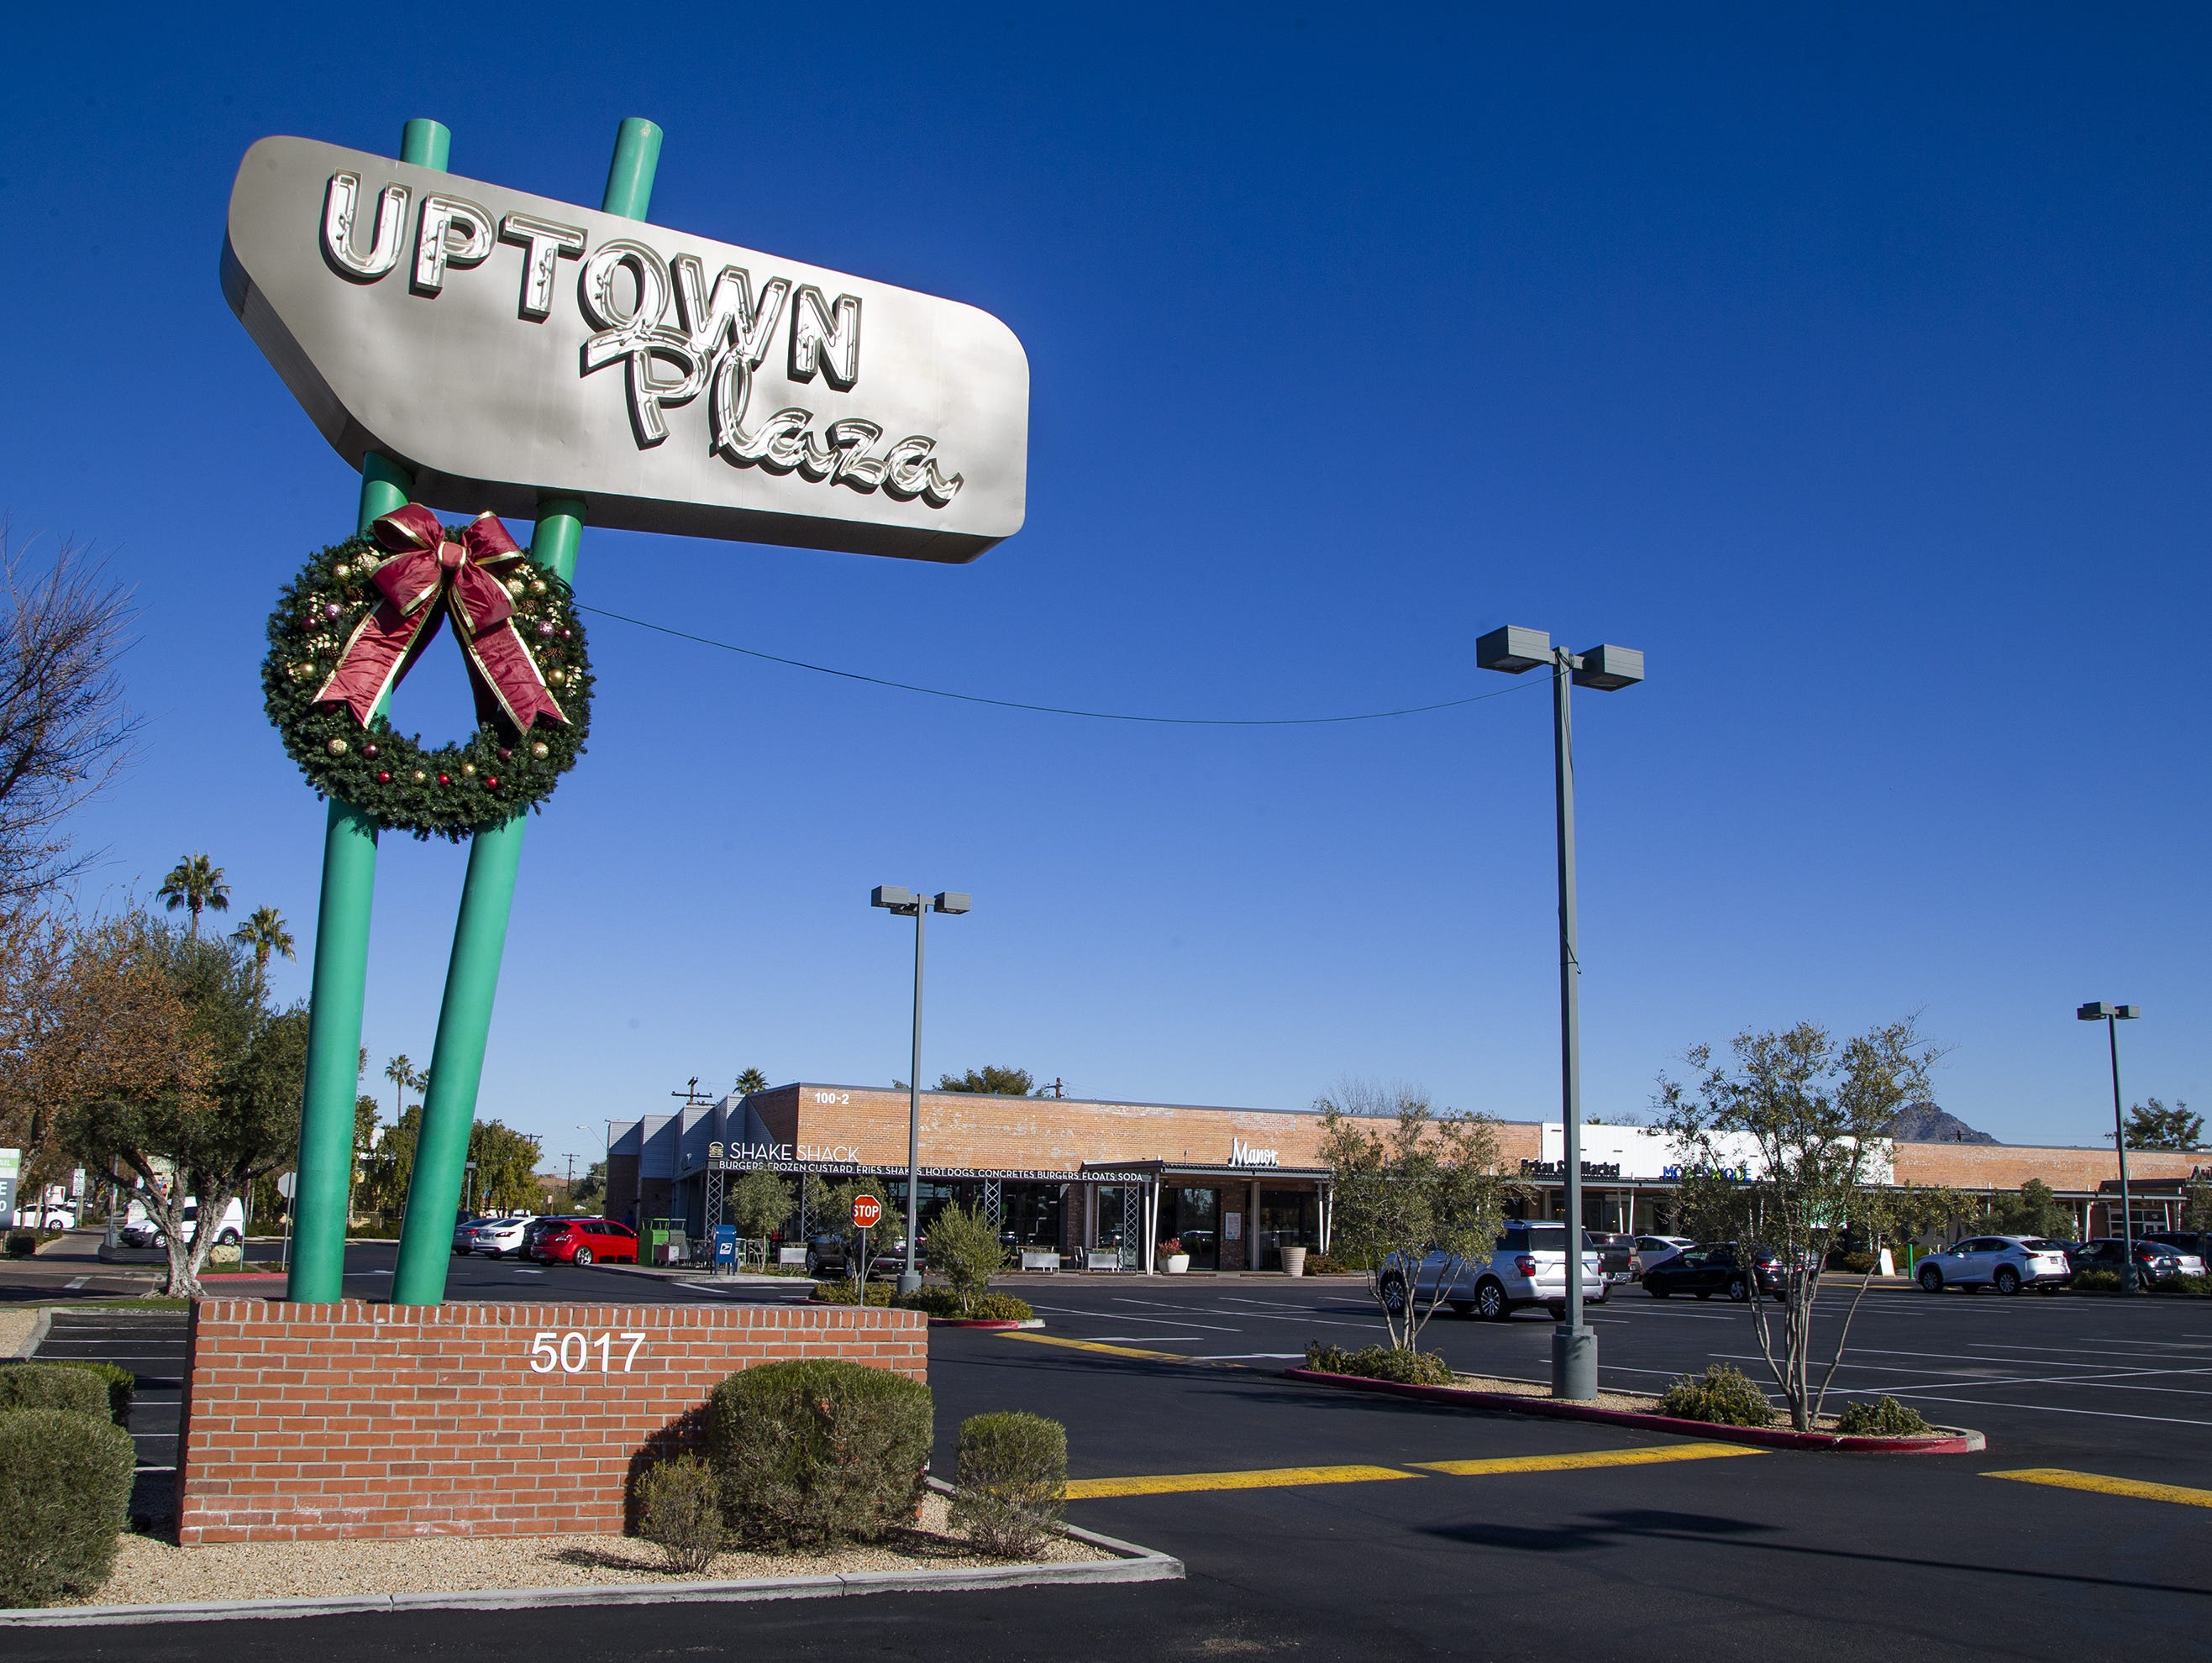 Uptown Plaza is a strip mall at the intersection of Camelback Road and Central Avenue in Phoenix.